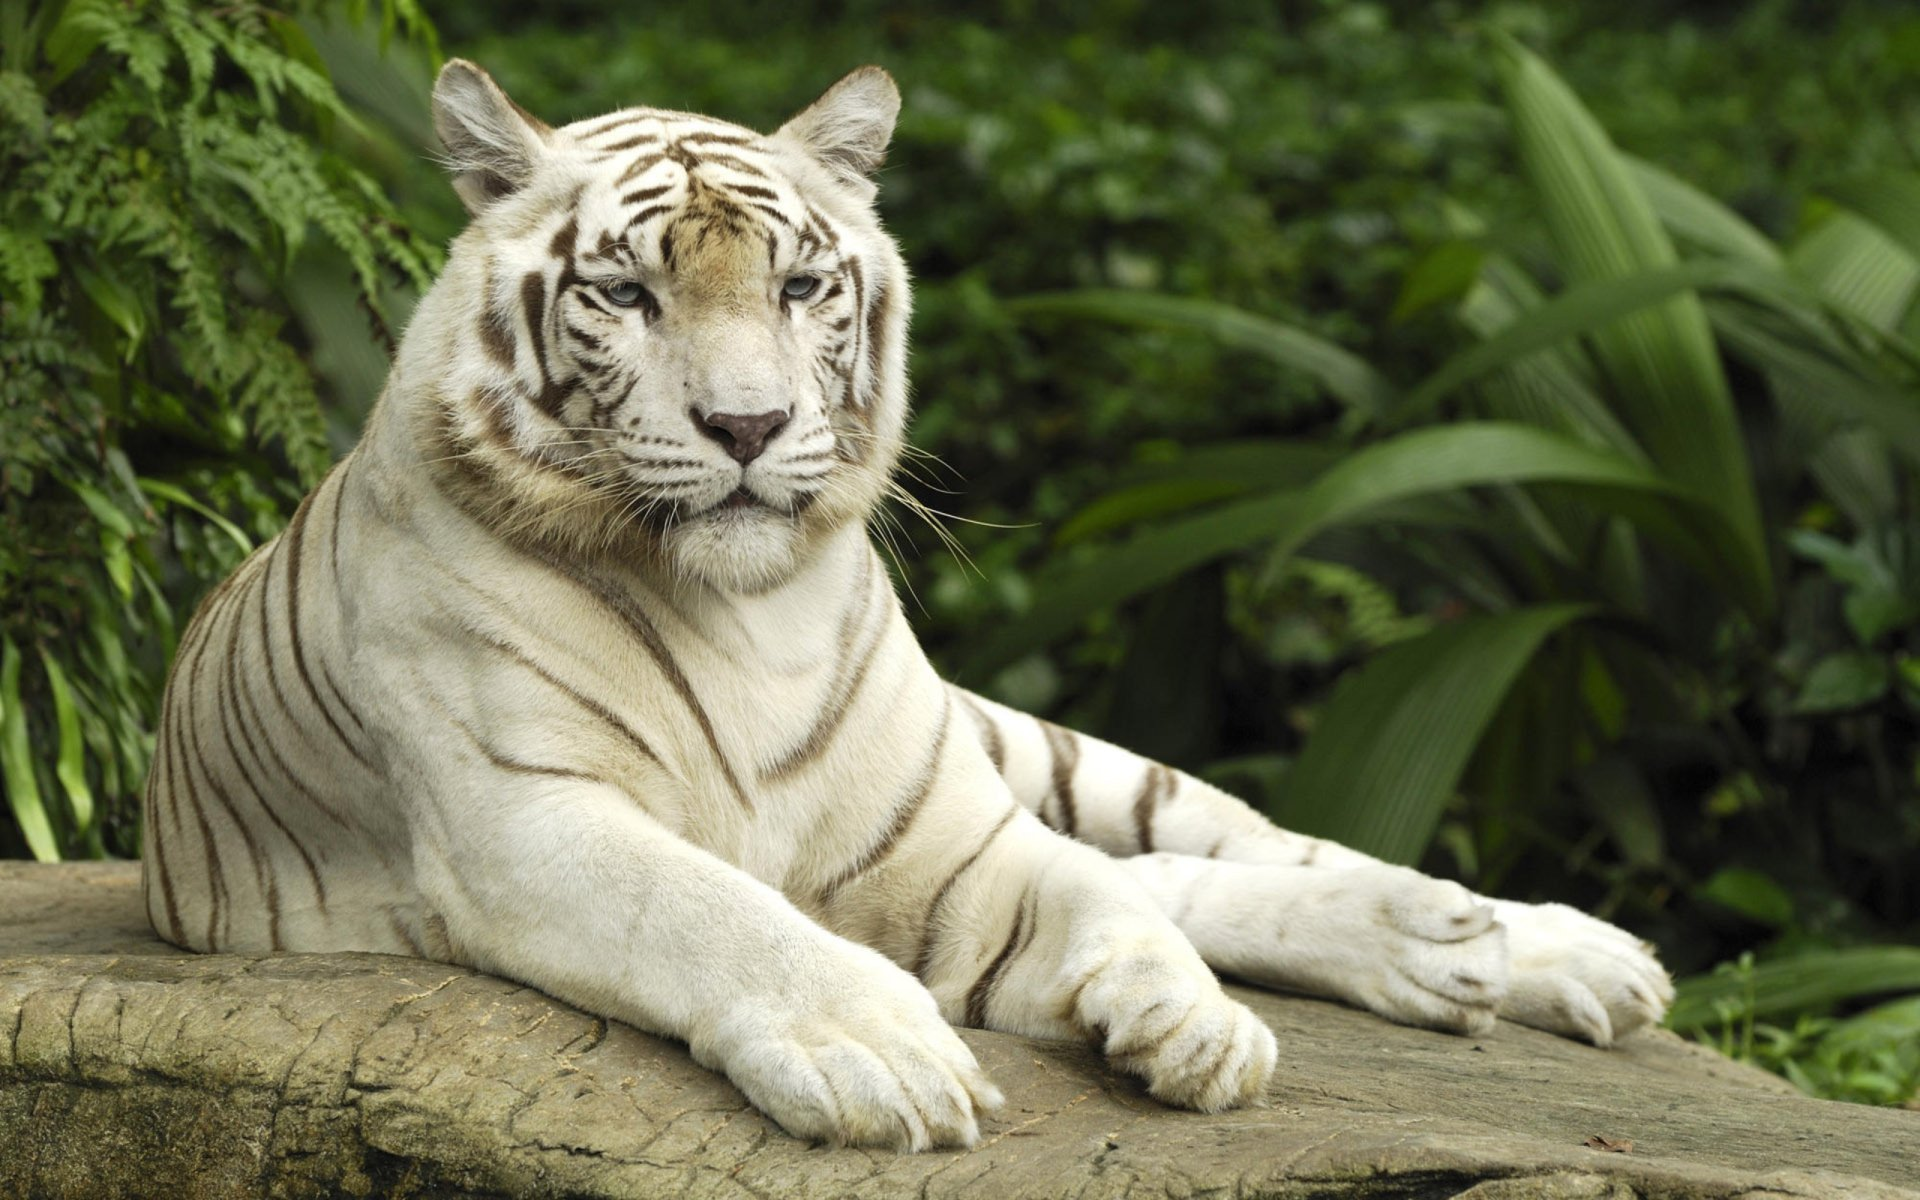 Animal - White Tiger  Tiger Big Cat White Animal Wallpaper